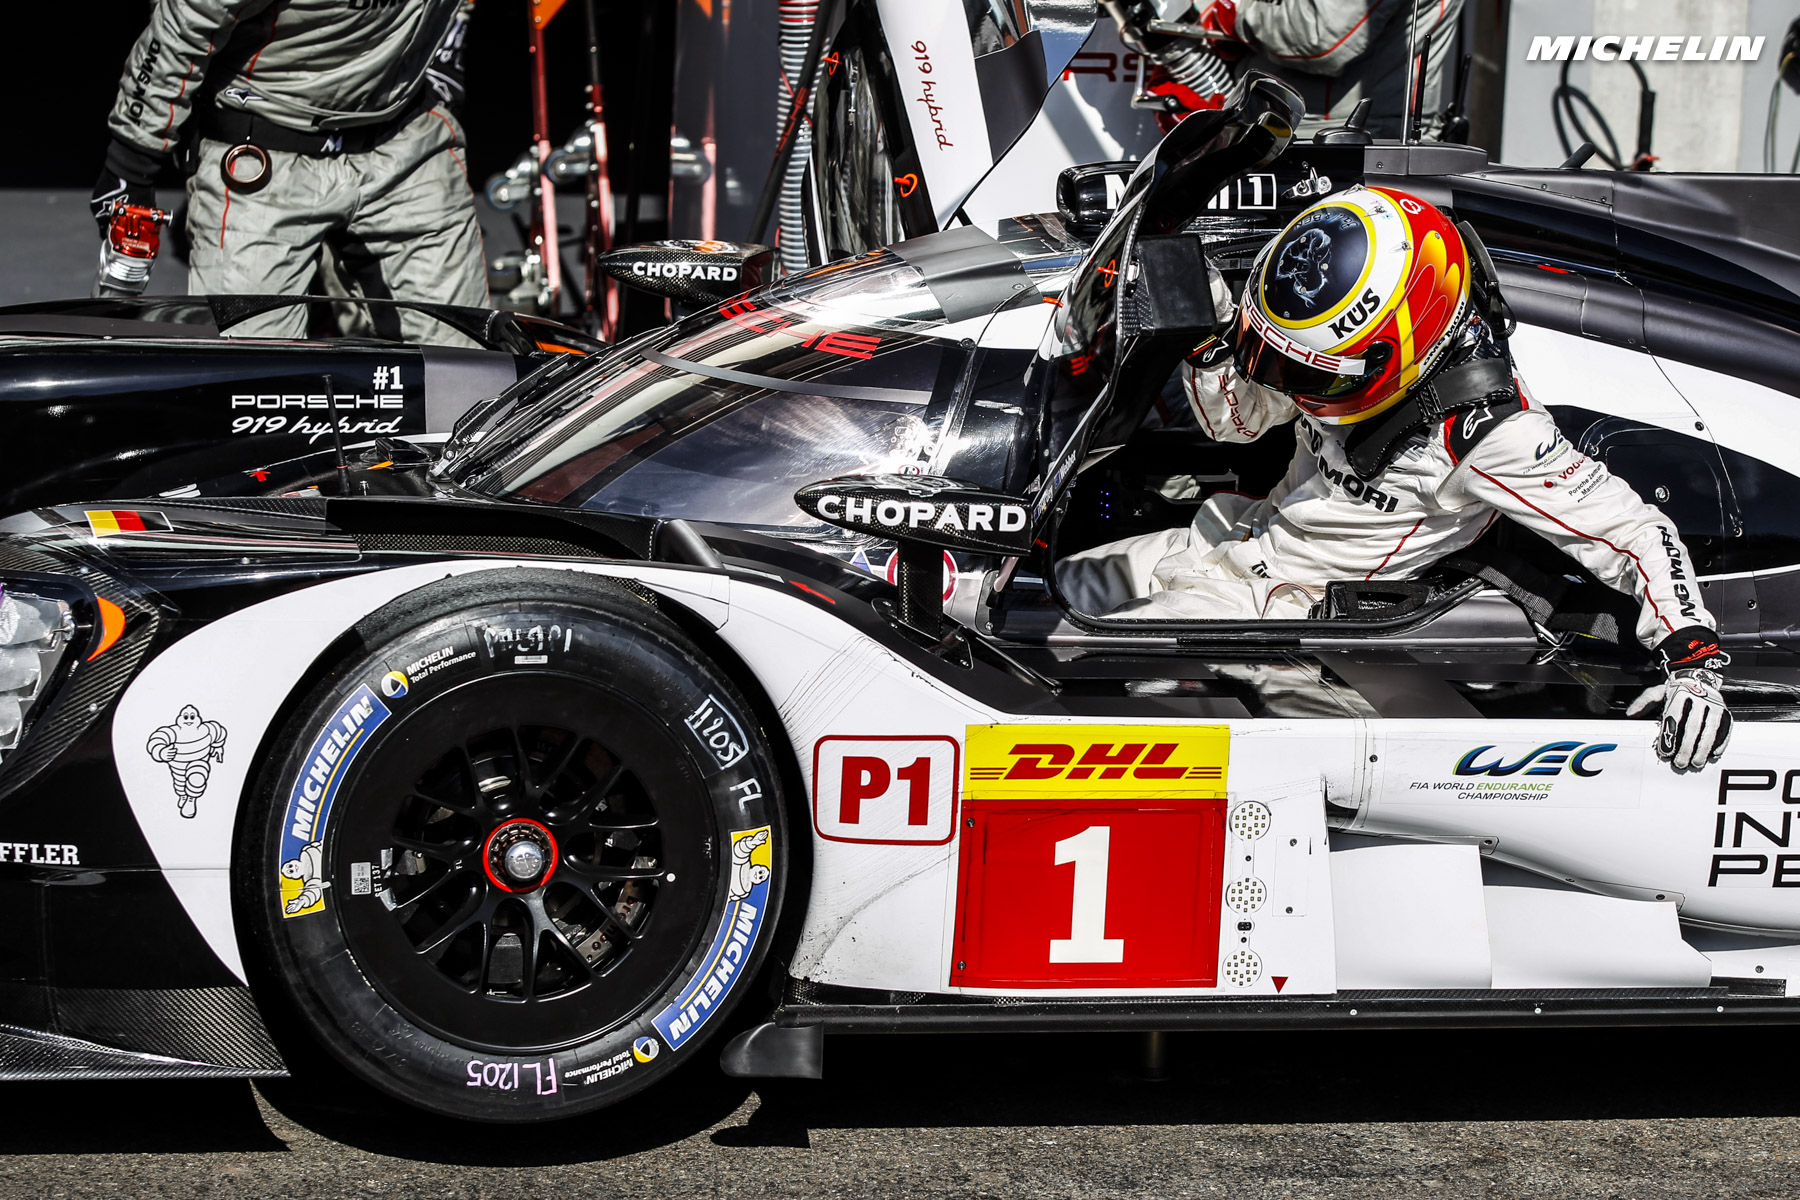 Honda World Conway >> FIA WEC (Spa): Porsche/Michelin earns front row start at Spa / News / MICHELIN Motorsport